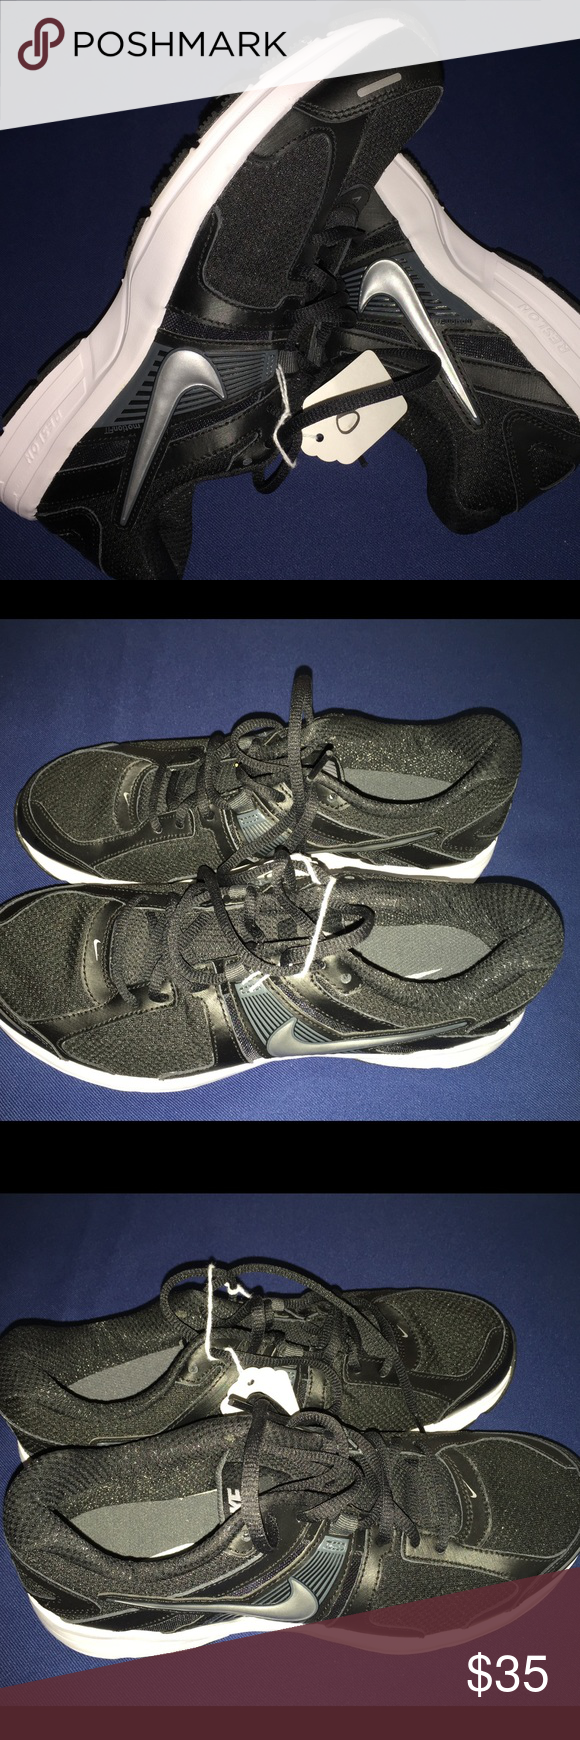 Nw Nike Dart10 size9 New Nike Shoes Sneakers